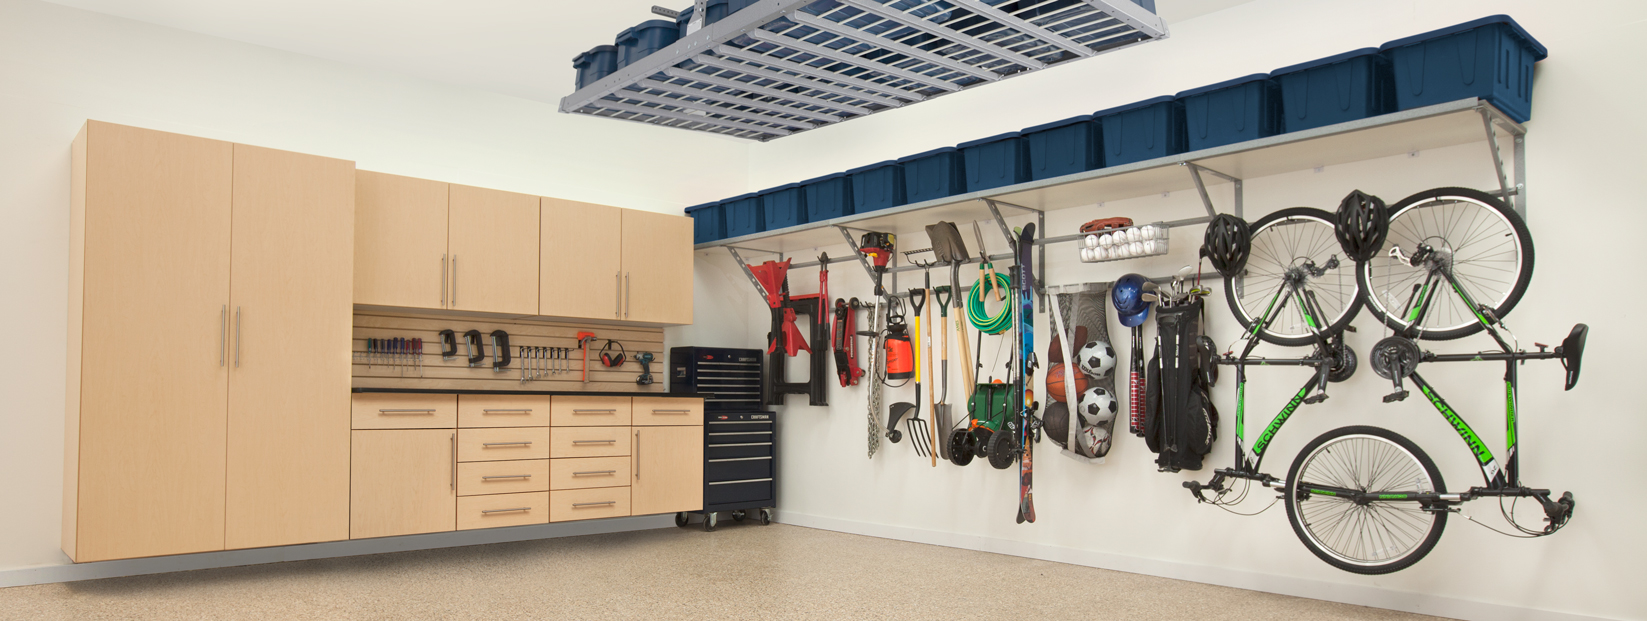 Garage Storage in Wellesley